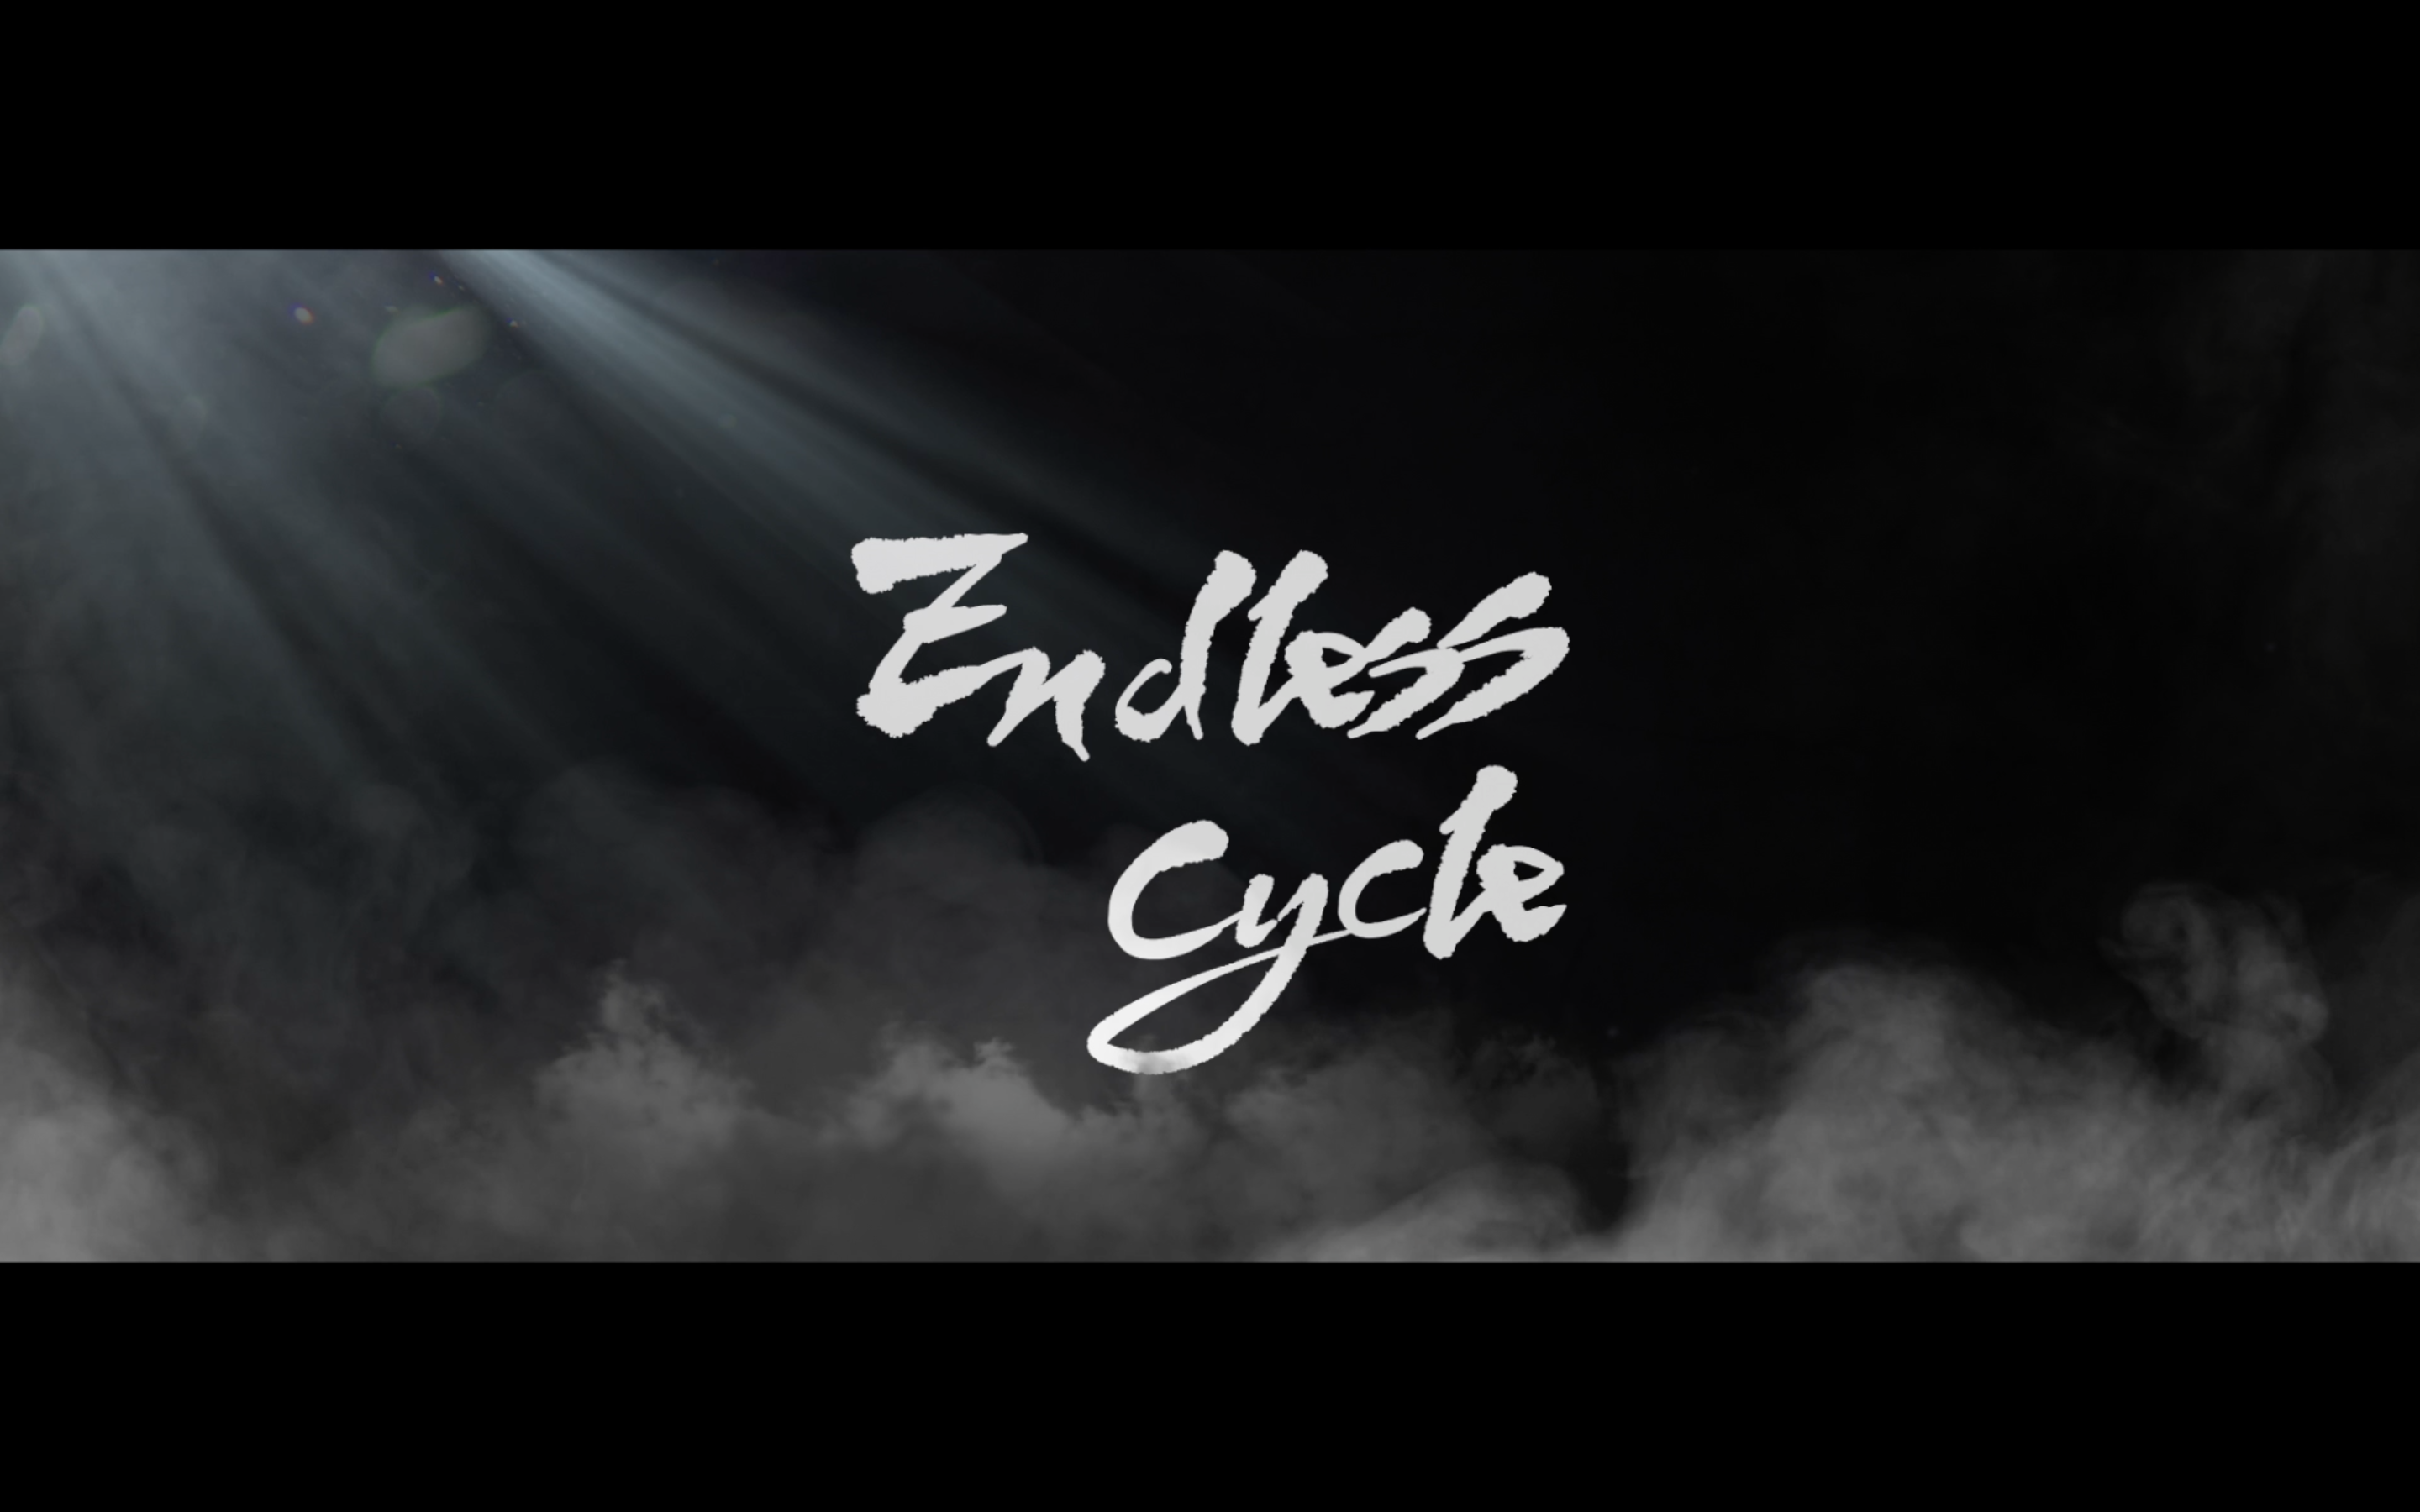 大支「Endless Cycle」「無盡輪迴」